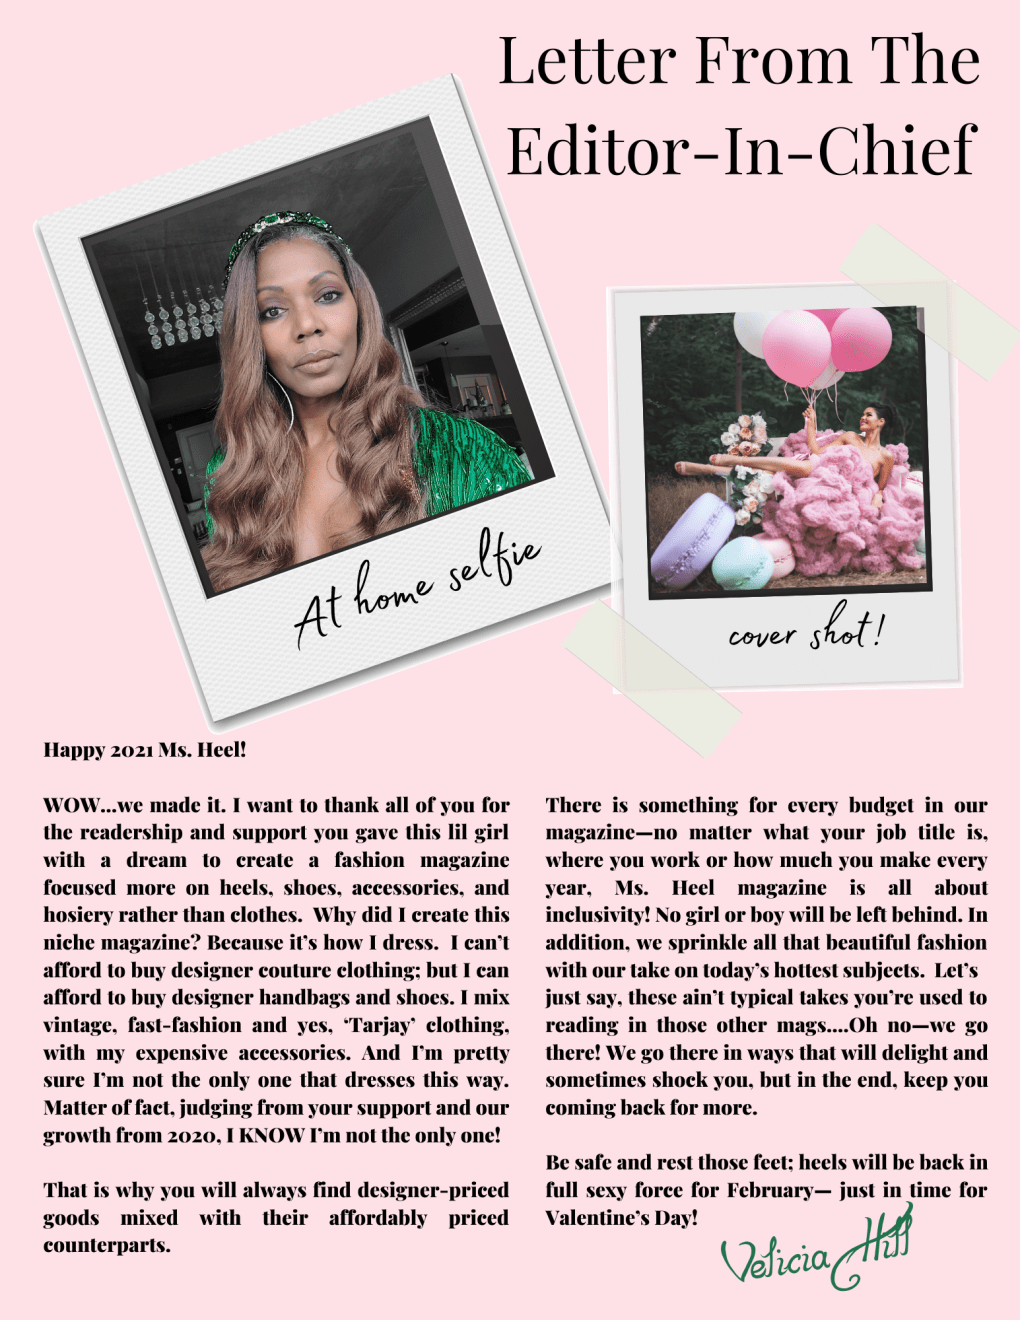 Happy birthday to us and to our editor-in-chief of Ms. Heel Magazine.